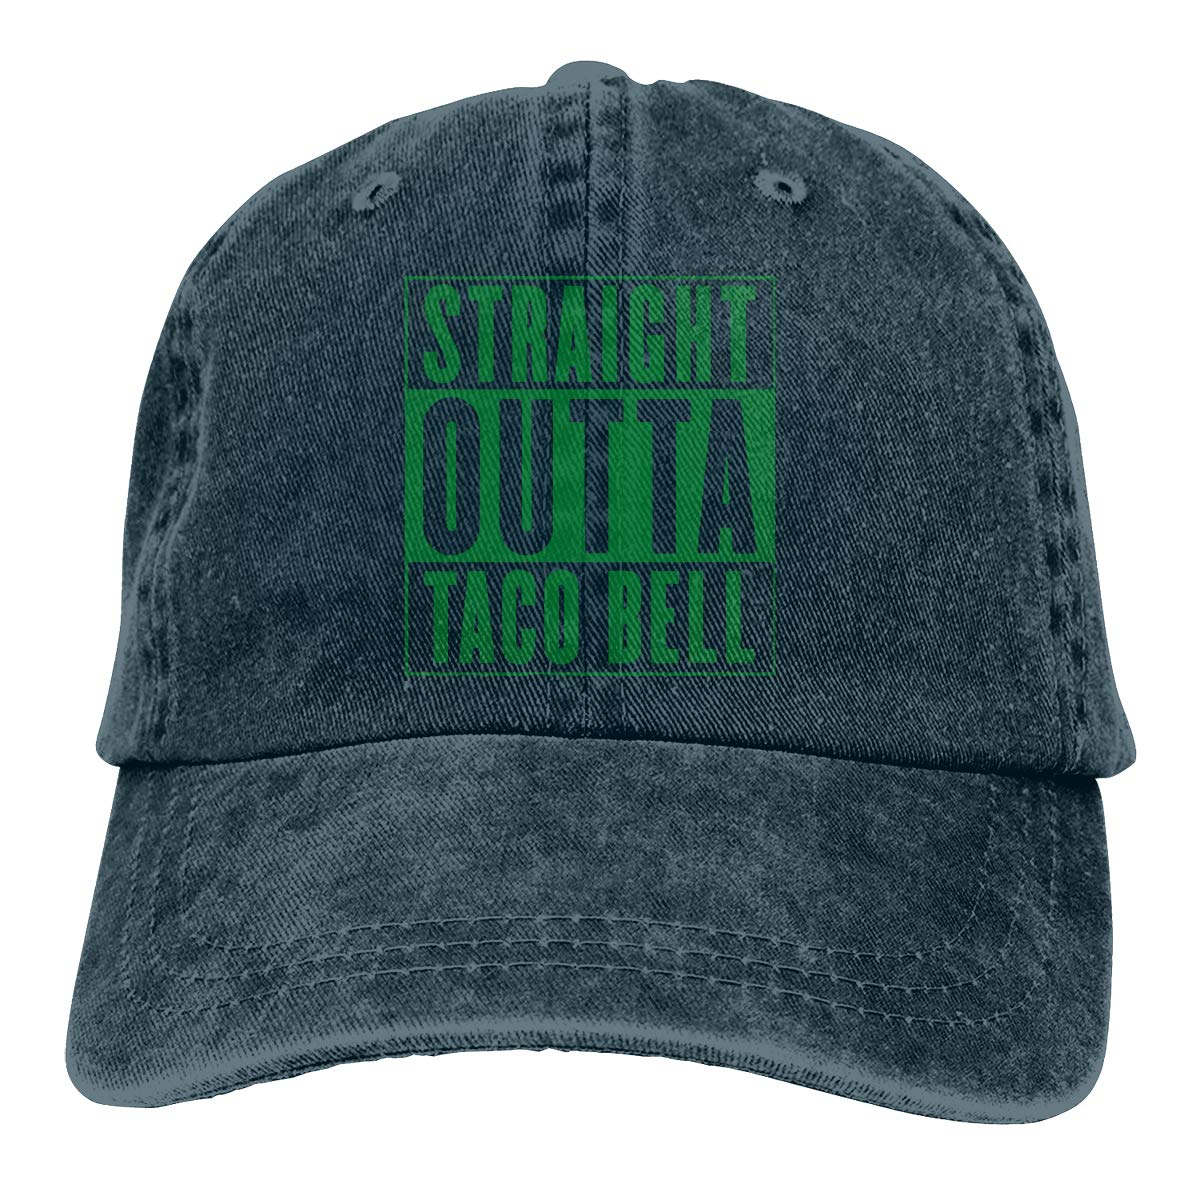 Straight Outta Taco Bell Adult Trendy Cowboy Hip Hop Cap Adjustable Baseball Cap